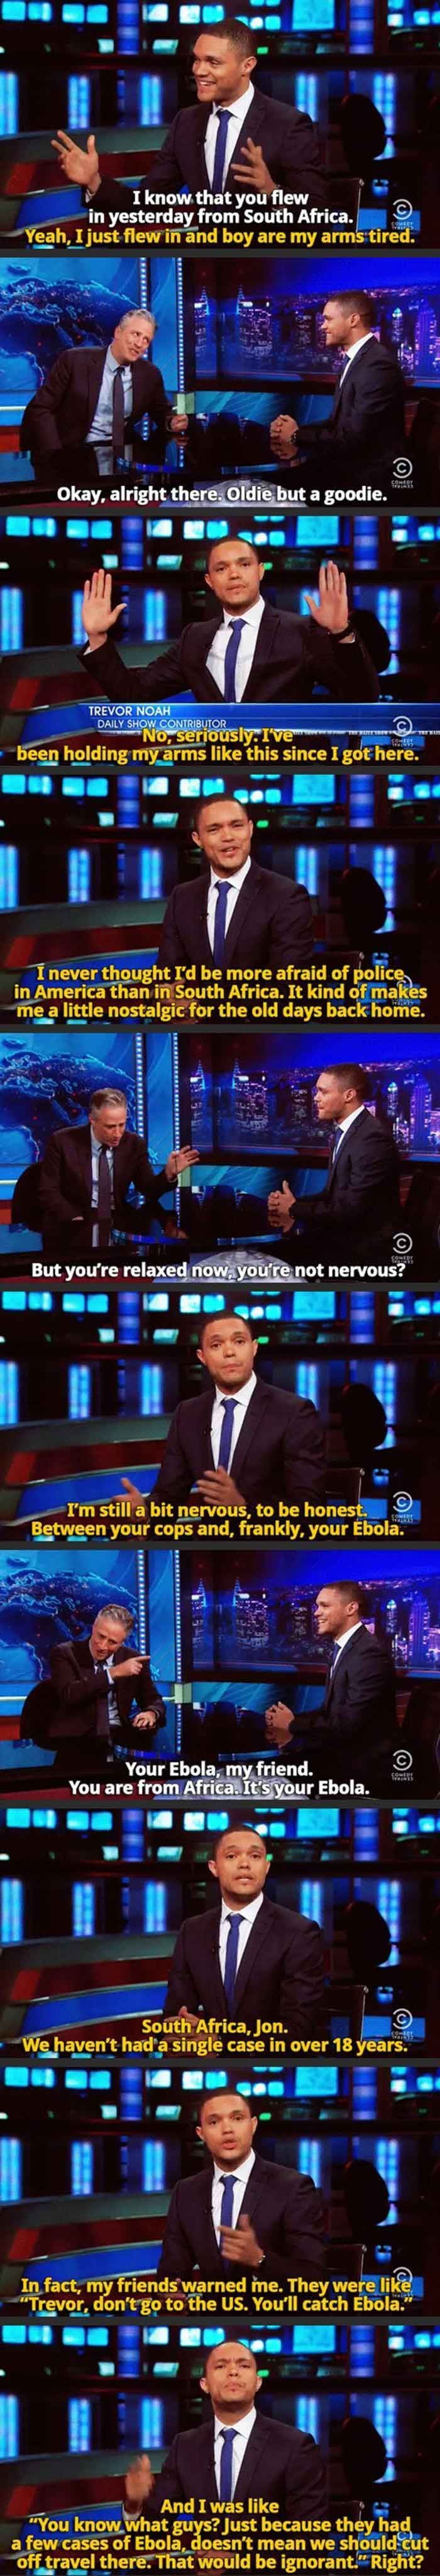 Trevor Noah on The Daily Show. So so so many shots fired.